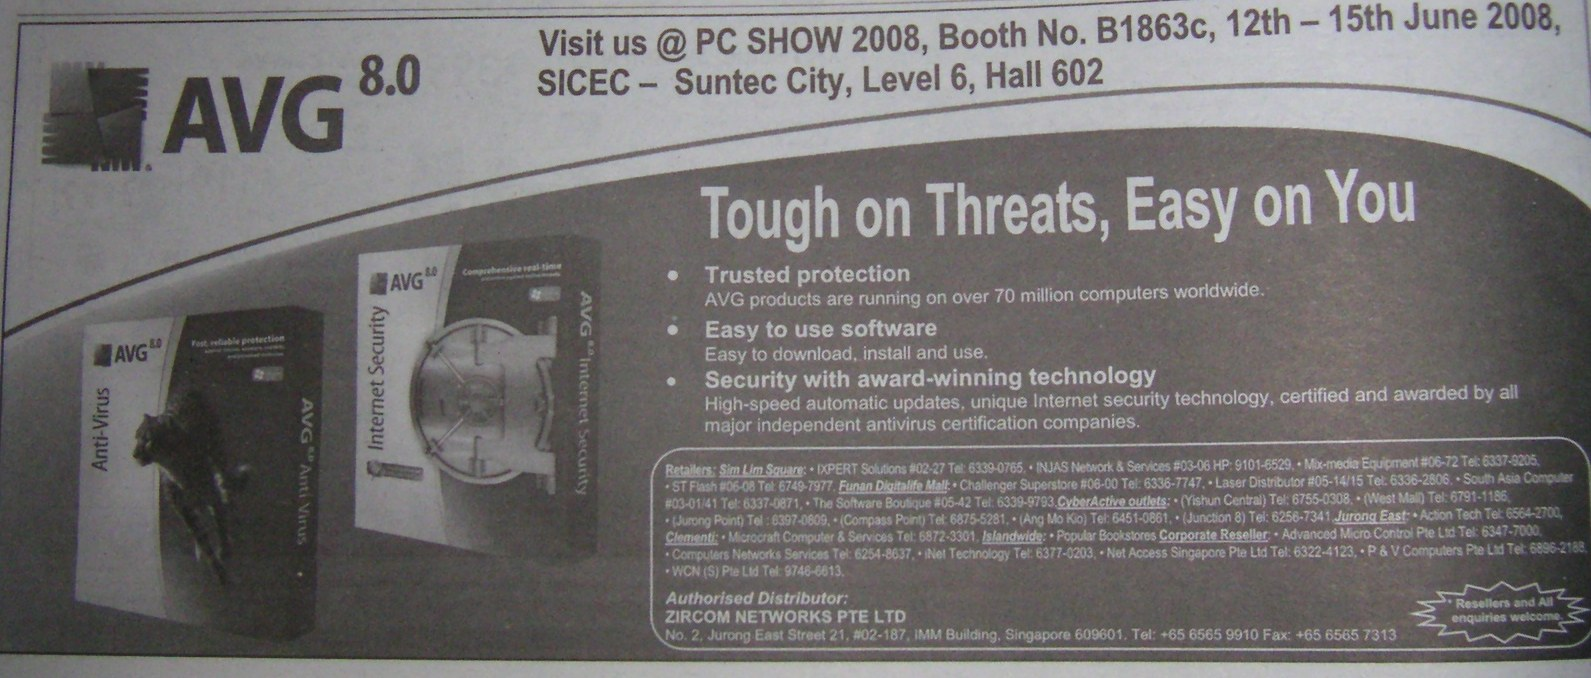 PC Show 2008 price list image brochure of Avg Antivirus